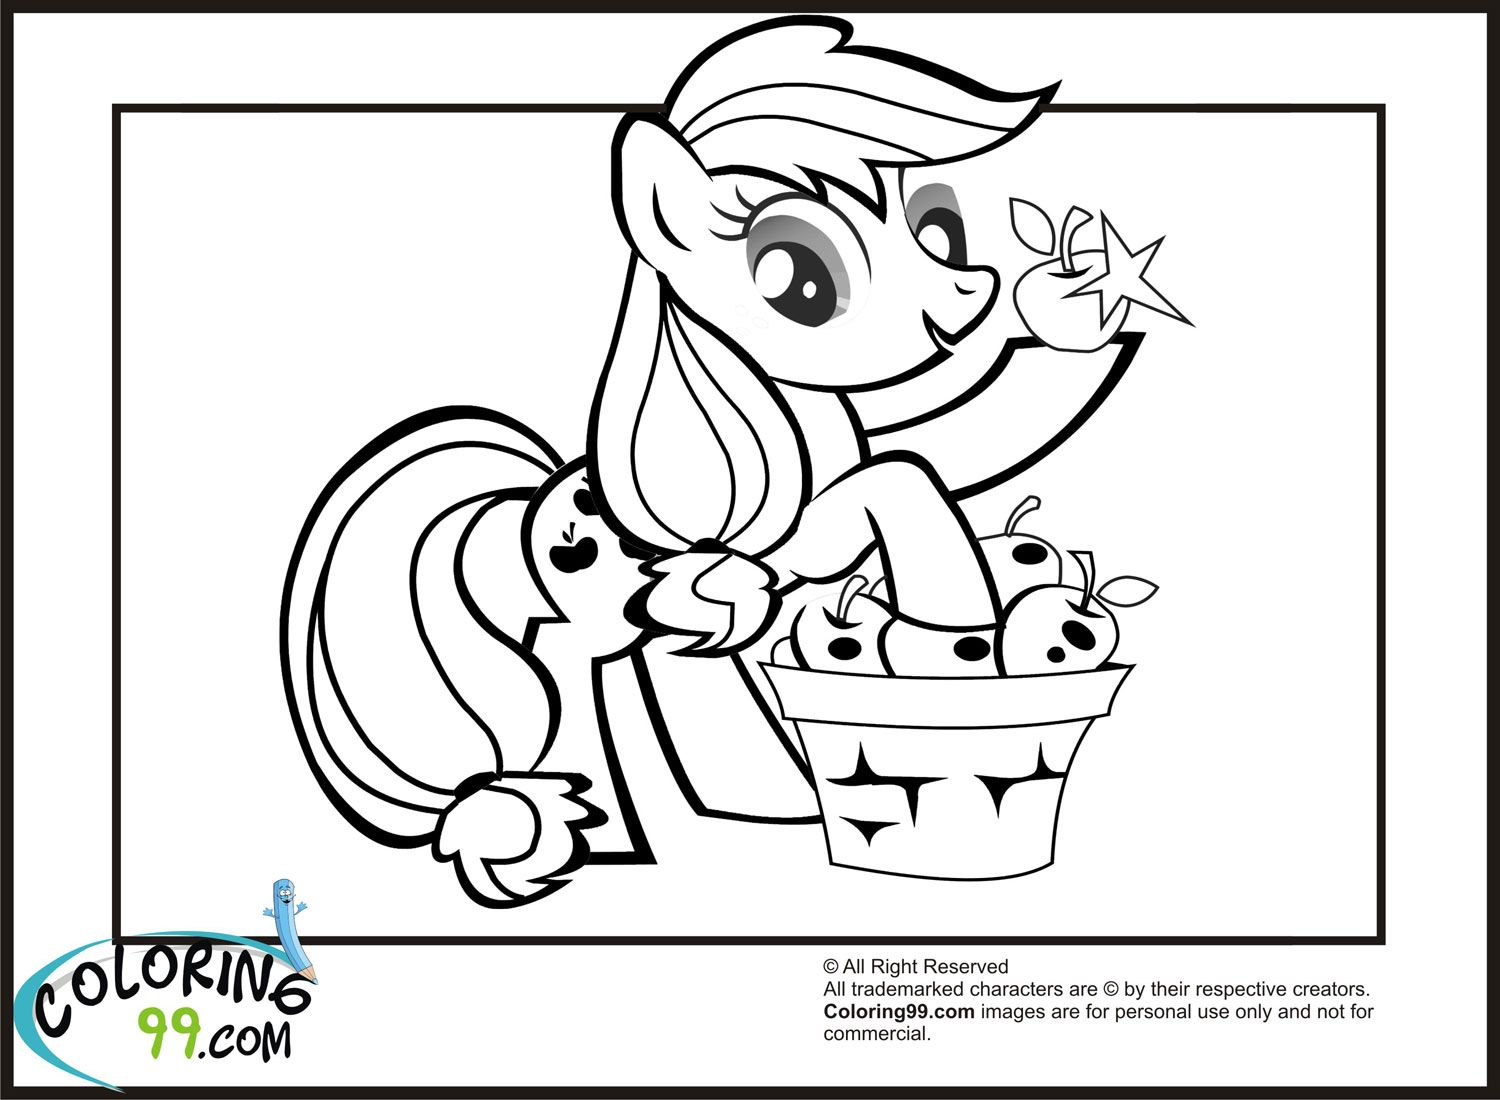 My little pony applejack coloring pages - Applejack Coloring Pages With Her Sweet Apple Nice Ideas For Your Kids Leisure Times